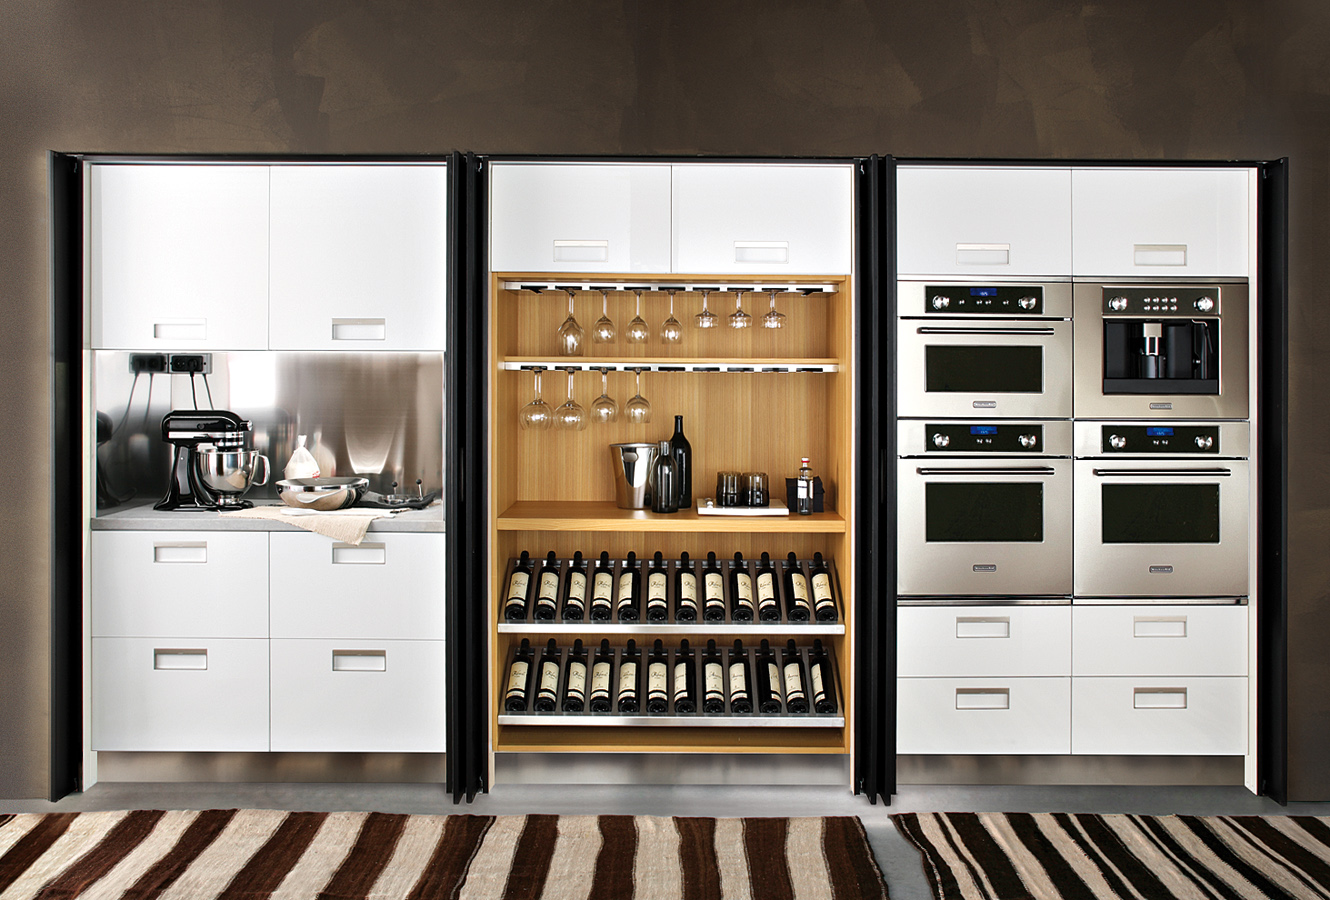 Modern italian kitchen design from arclinea - Small space wine racks design ...